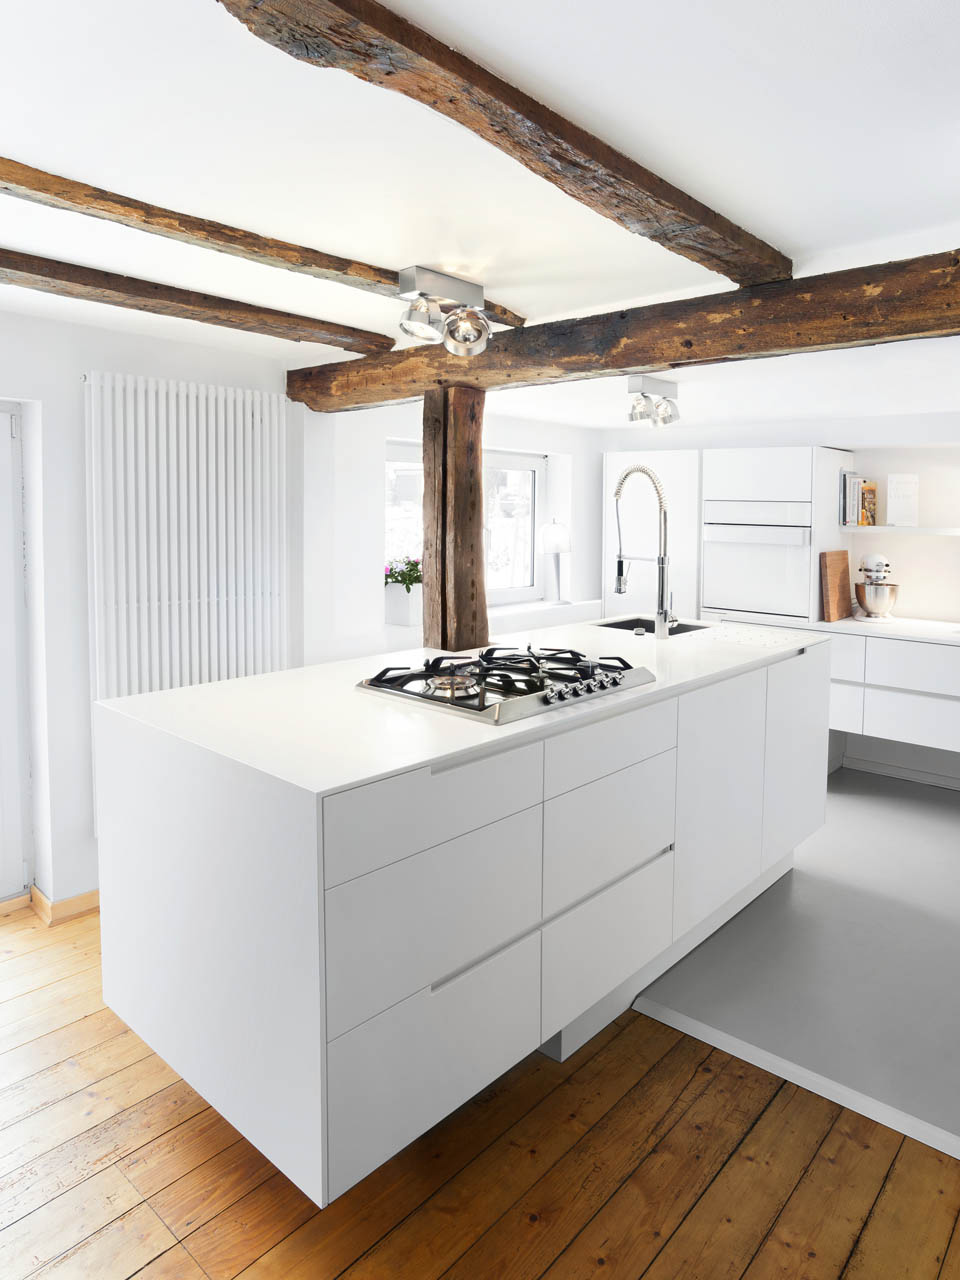 plan 3 kitchens / Schreiber family / Old treasures in a new robe